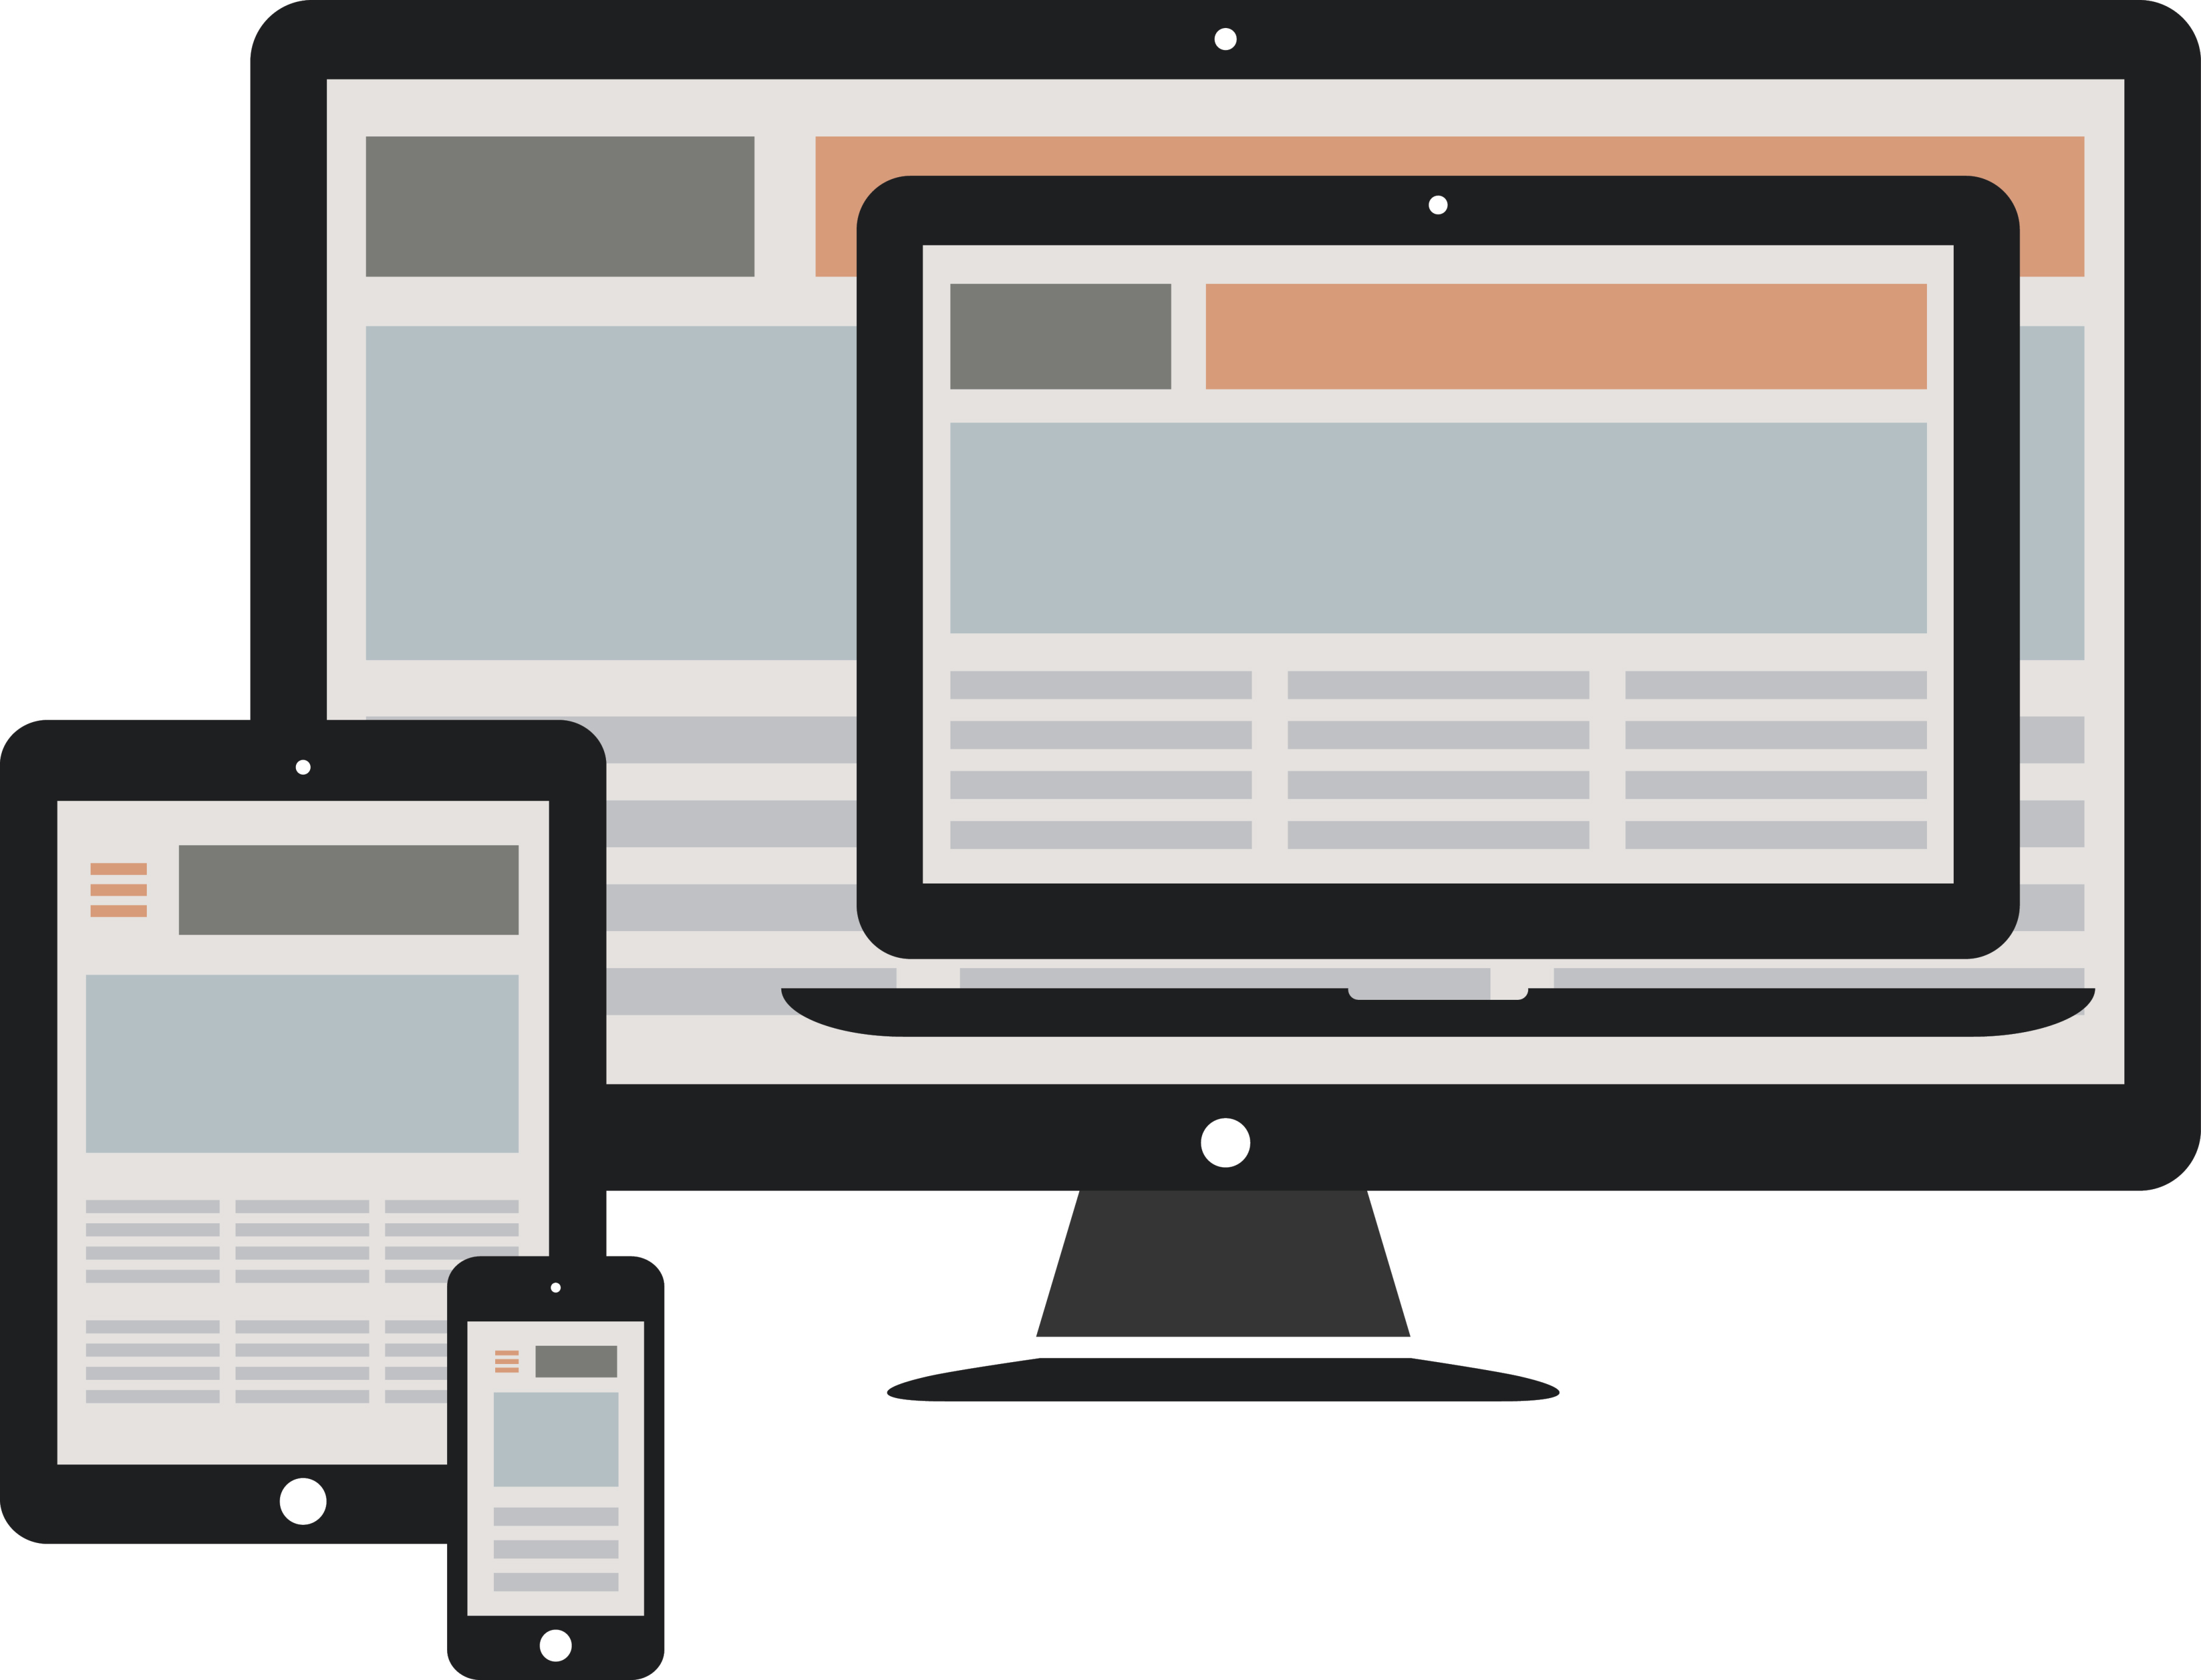 Le responsive design au service du marketing mobile